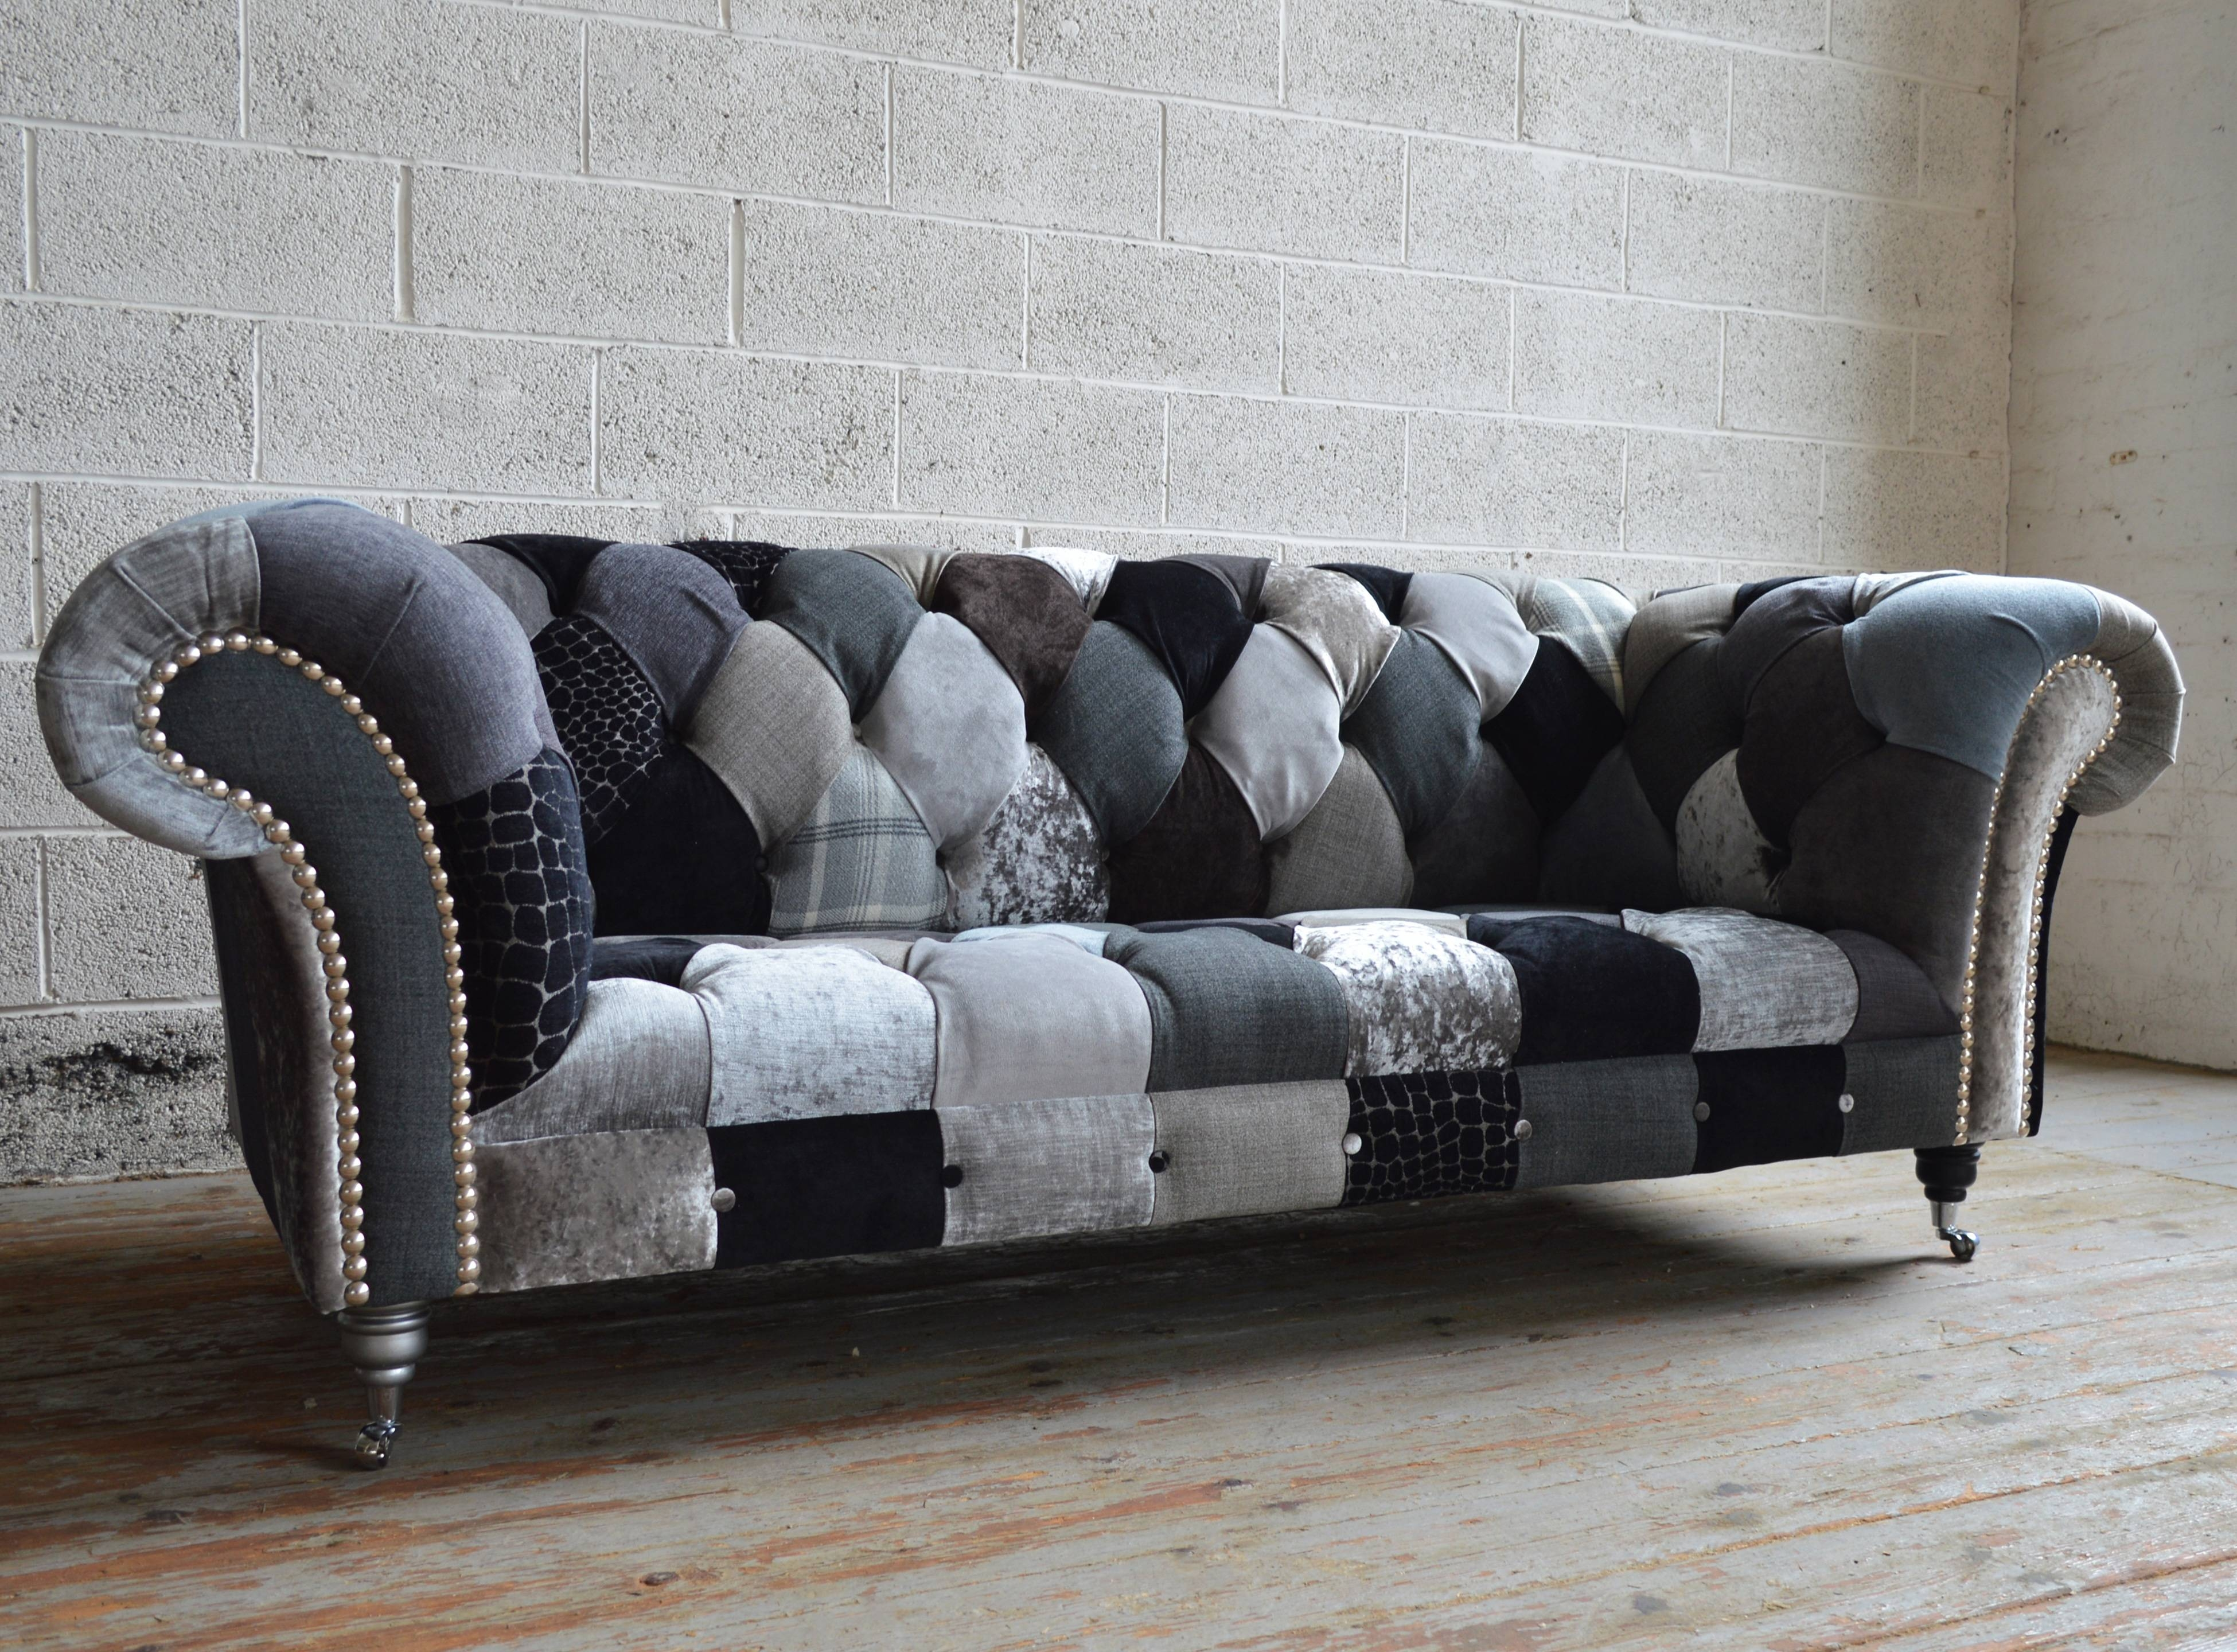 Brighton Patchwork Chesterfield Sofa | Abode Sofas For Chesterfield Sofas (View 5 of 30)